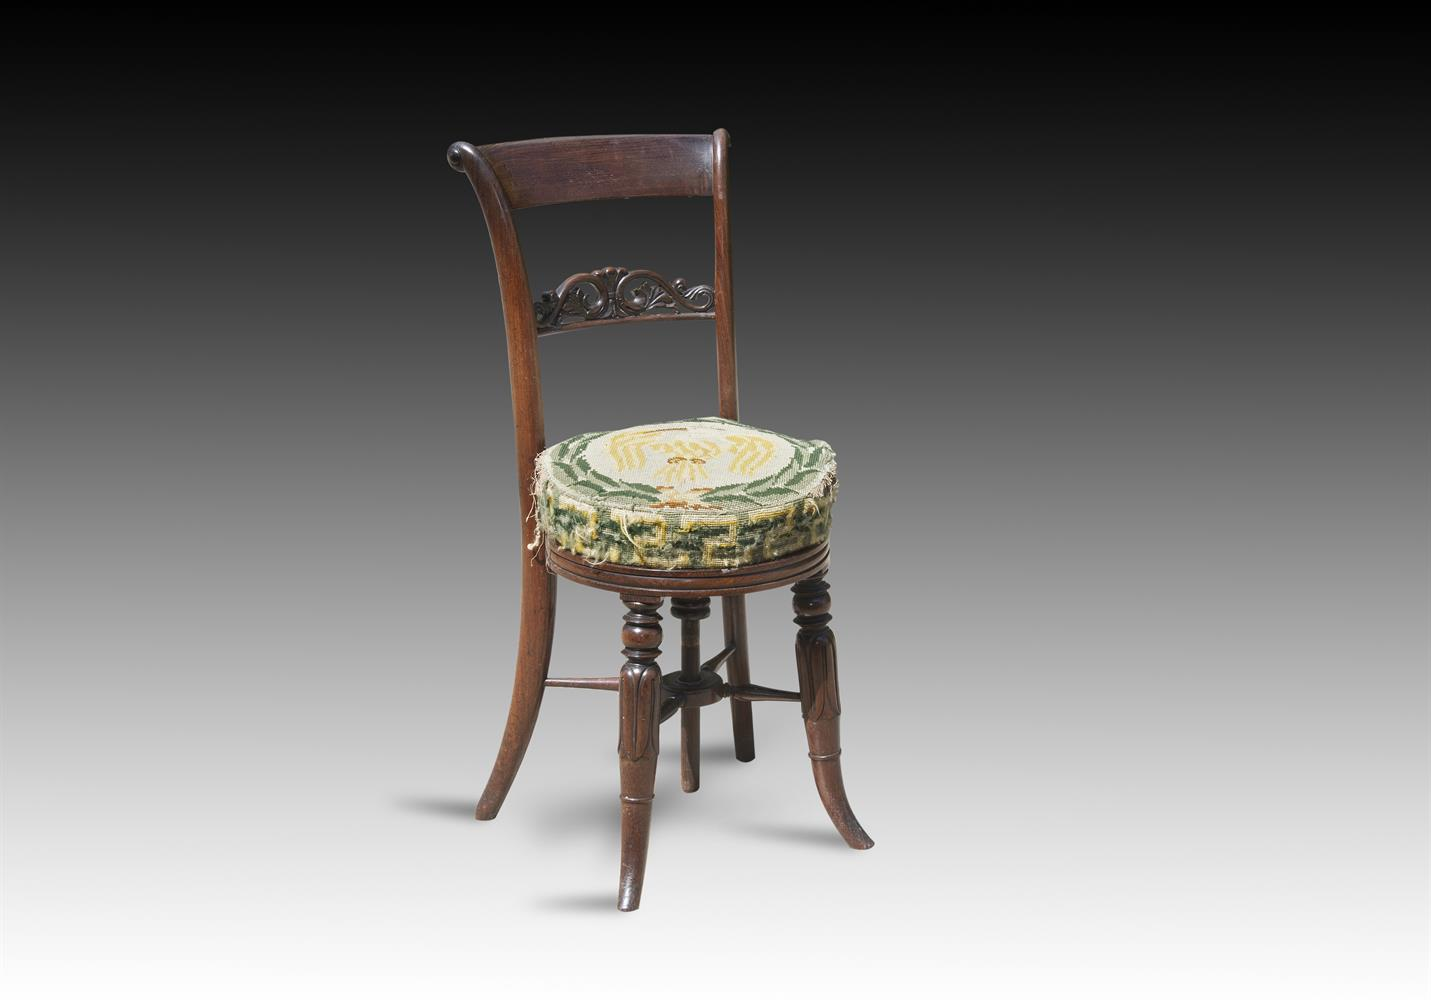 Y† A GEORGE IV ROSEWOOD MUSICIAN'S CHAIR